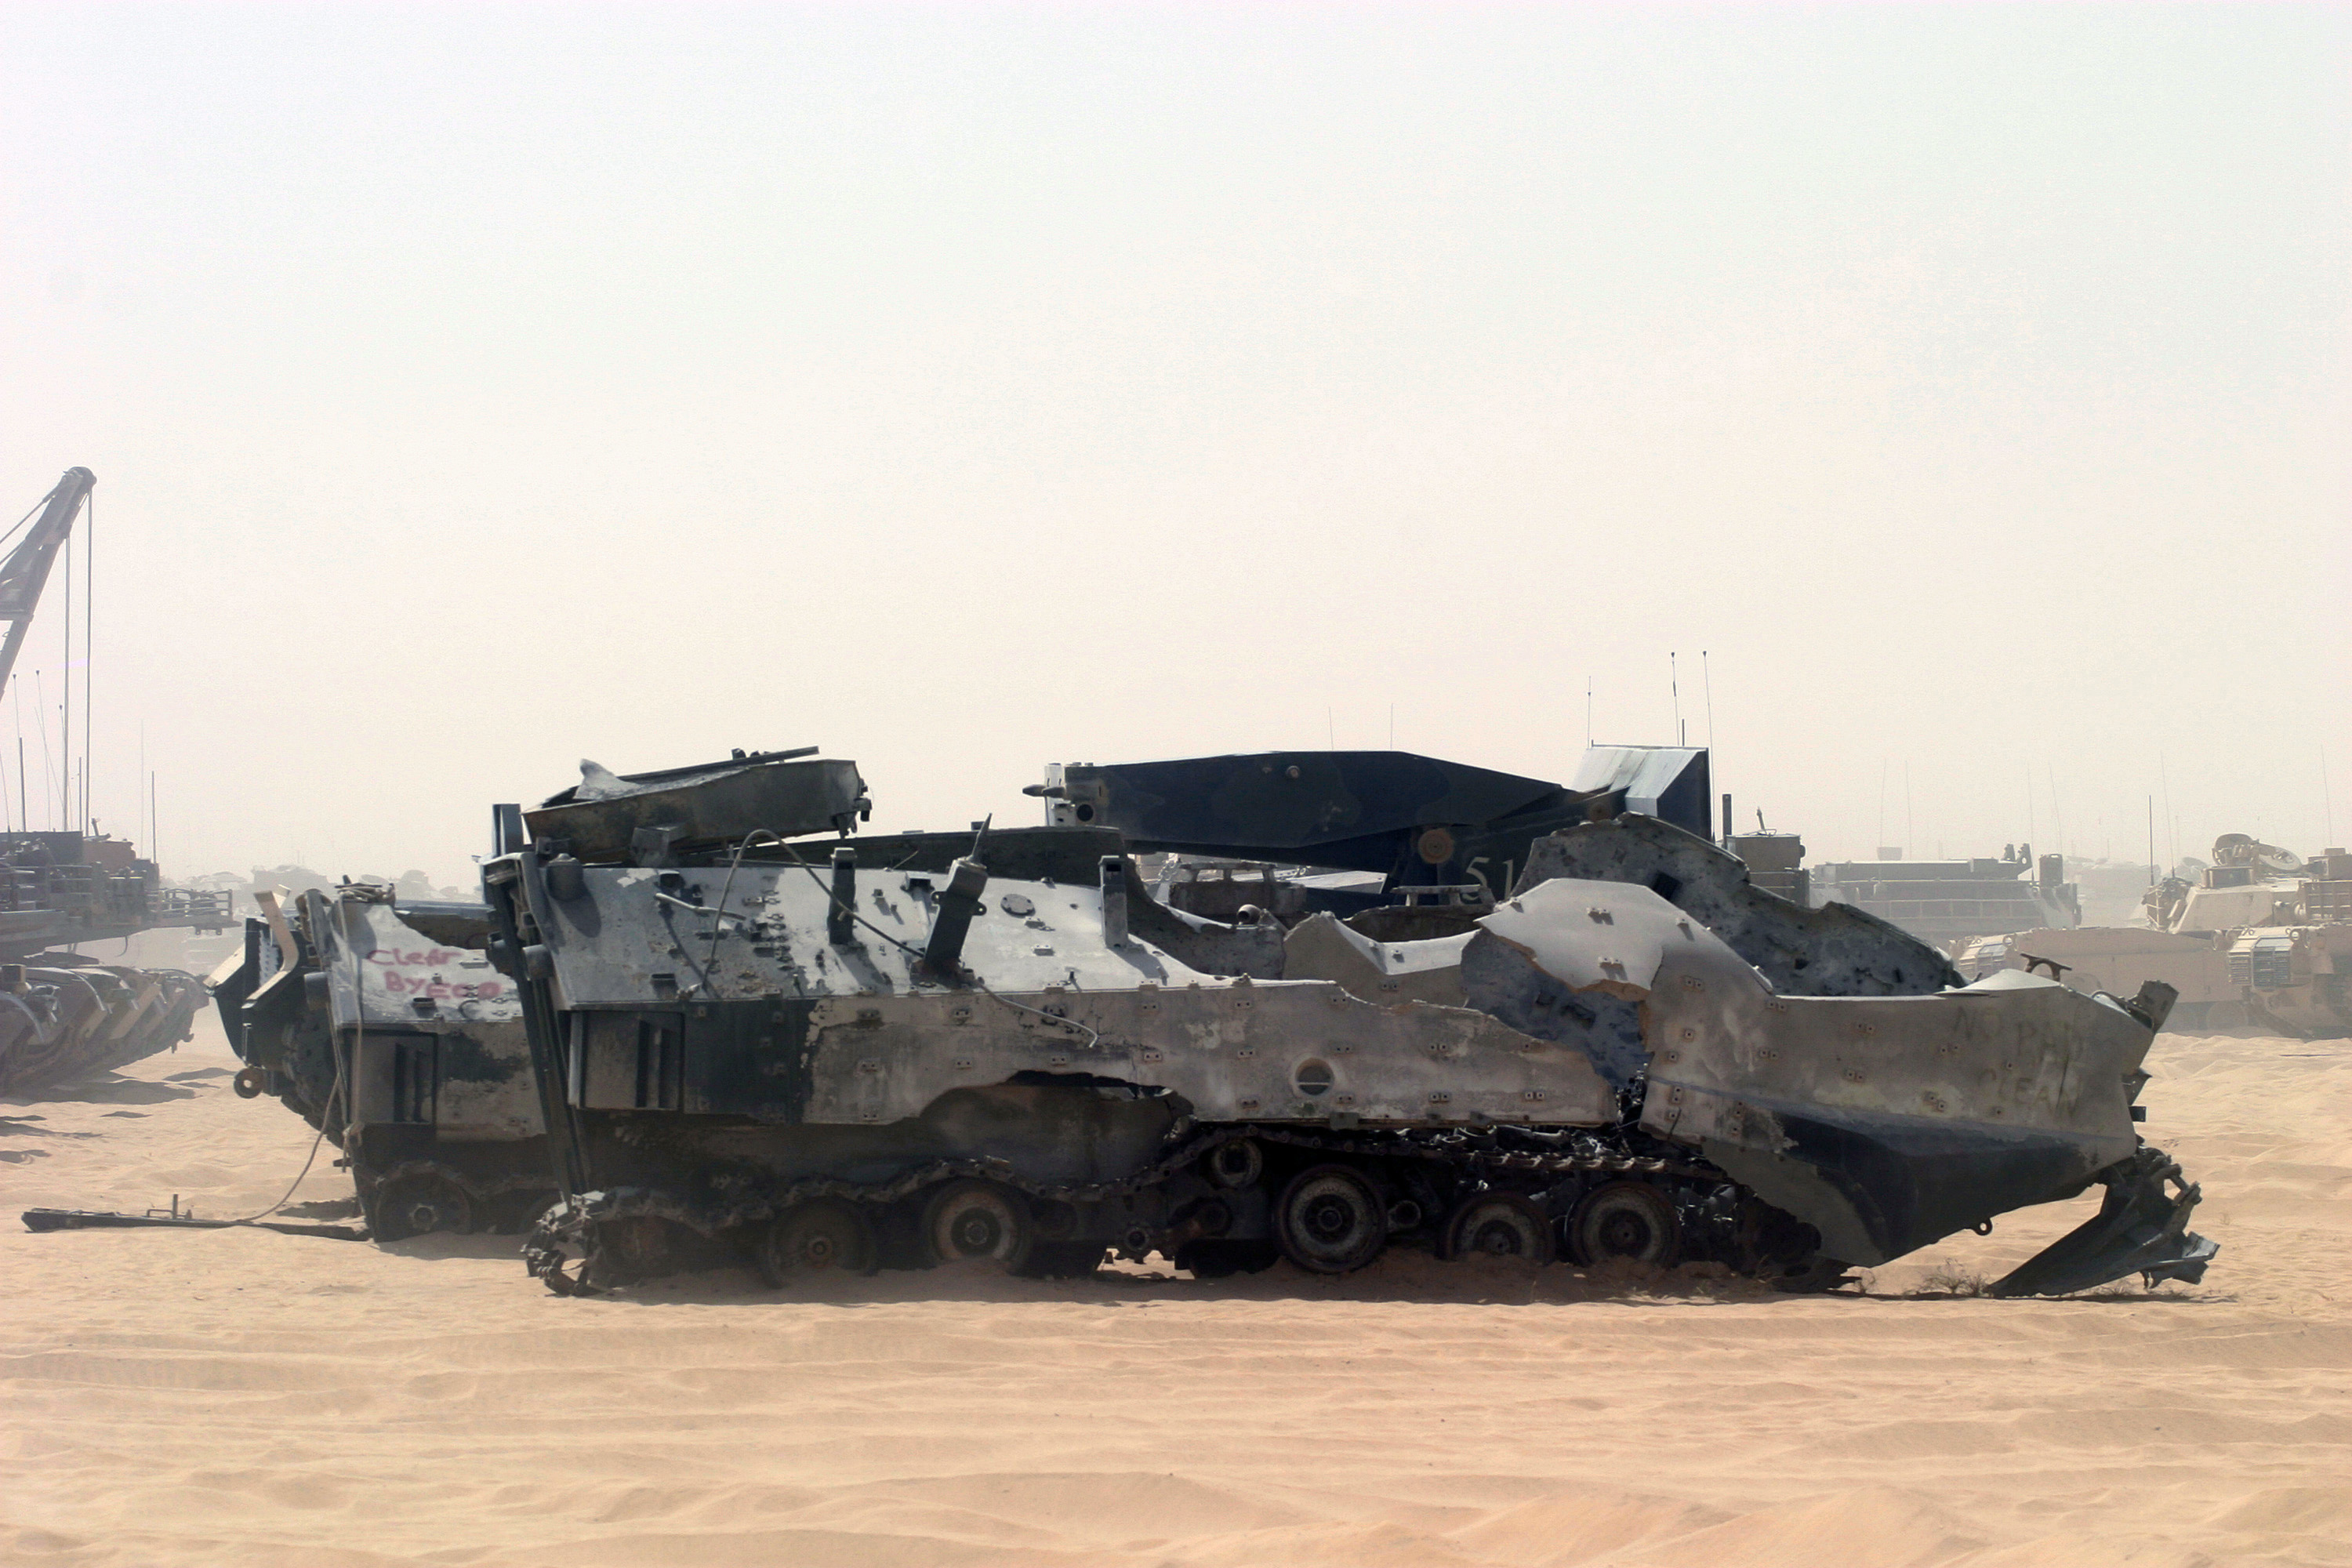 File:Destroyed US military vehicles in Iraq.JPEG - Wikimedia Commons